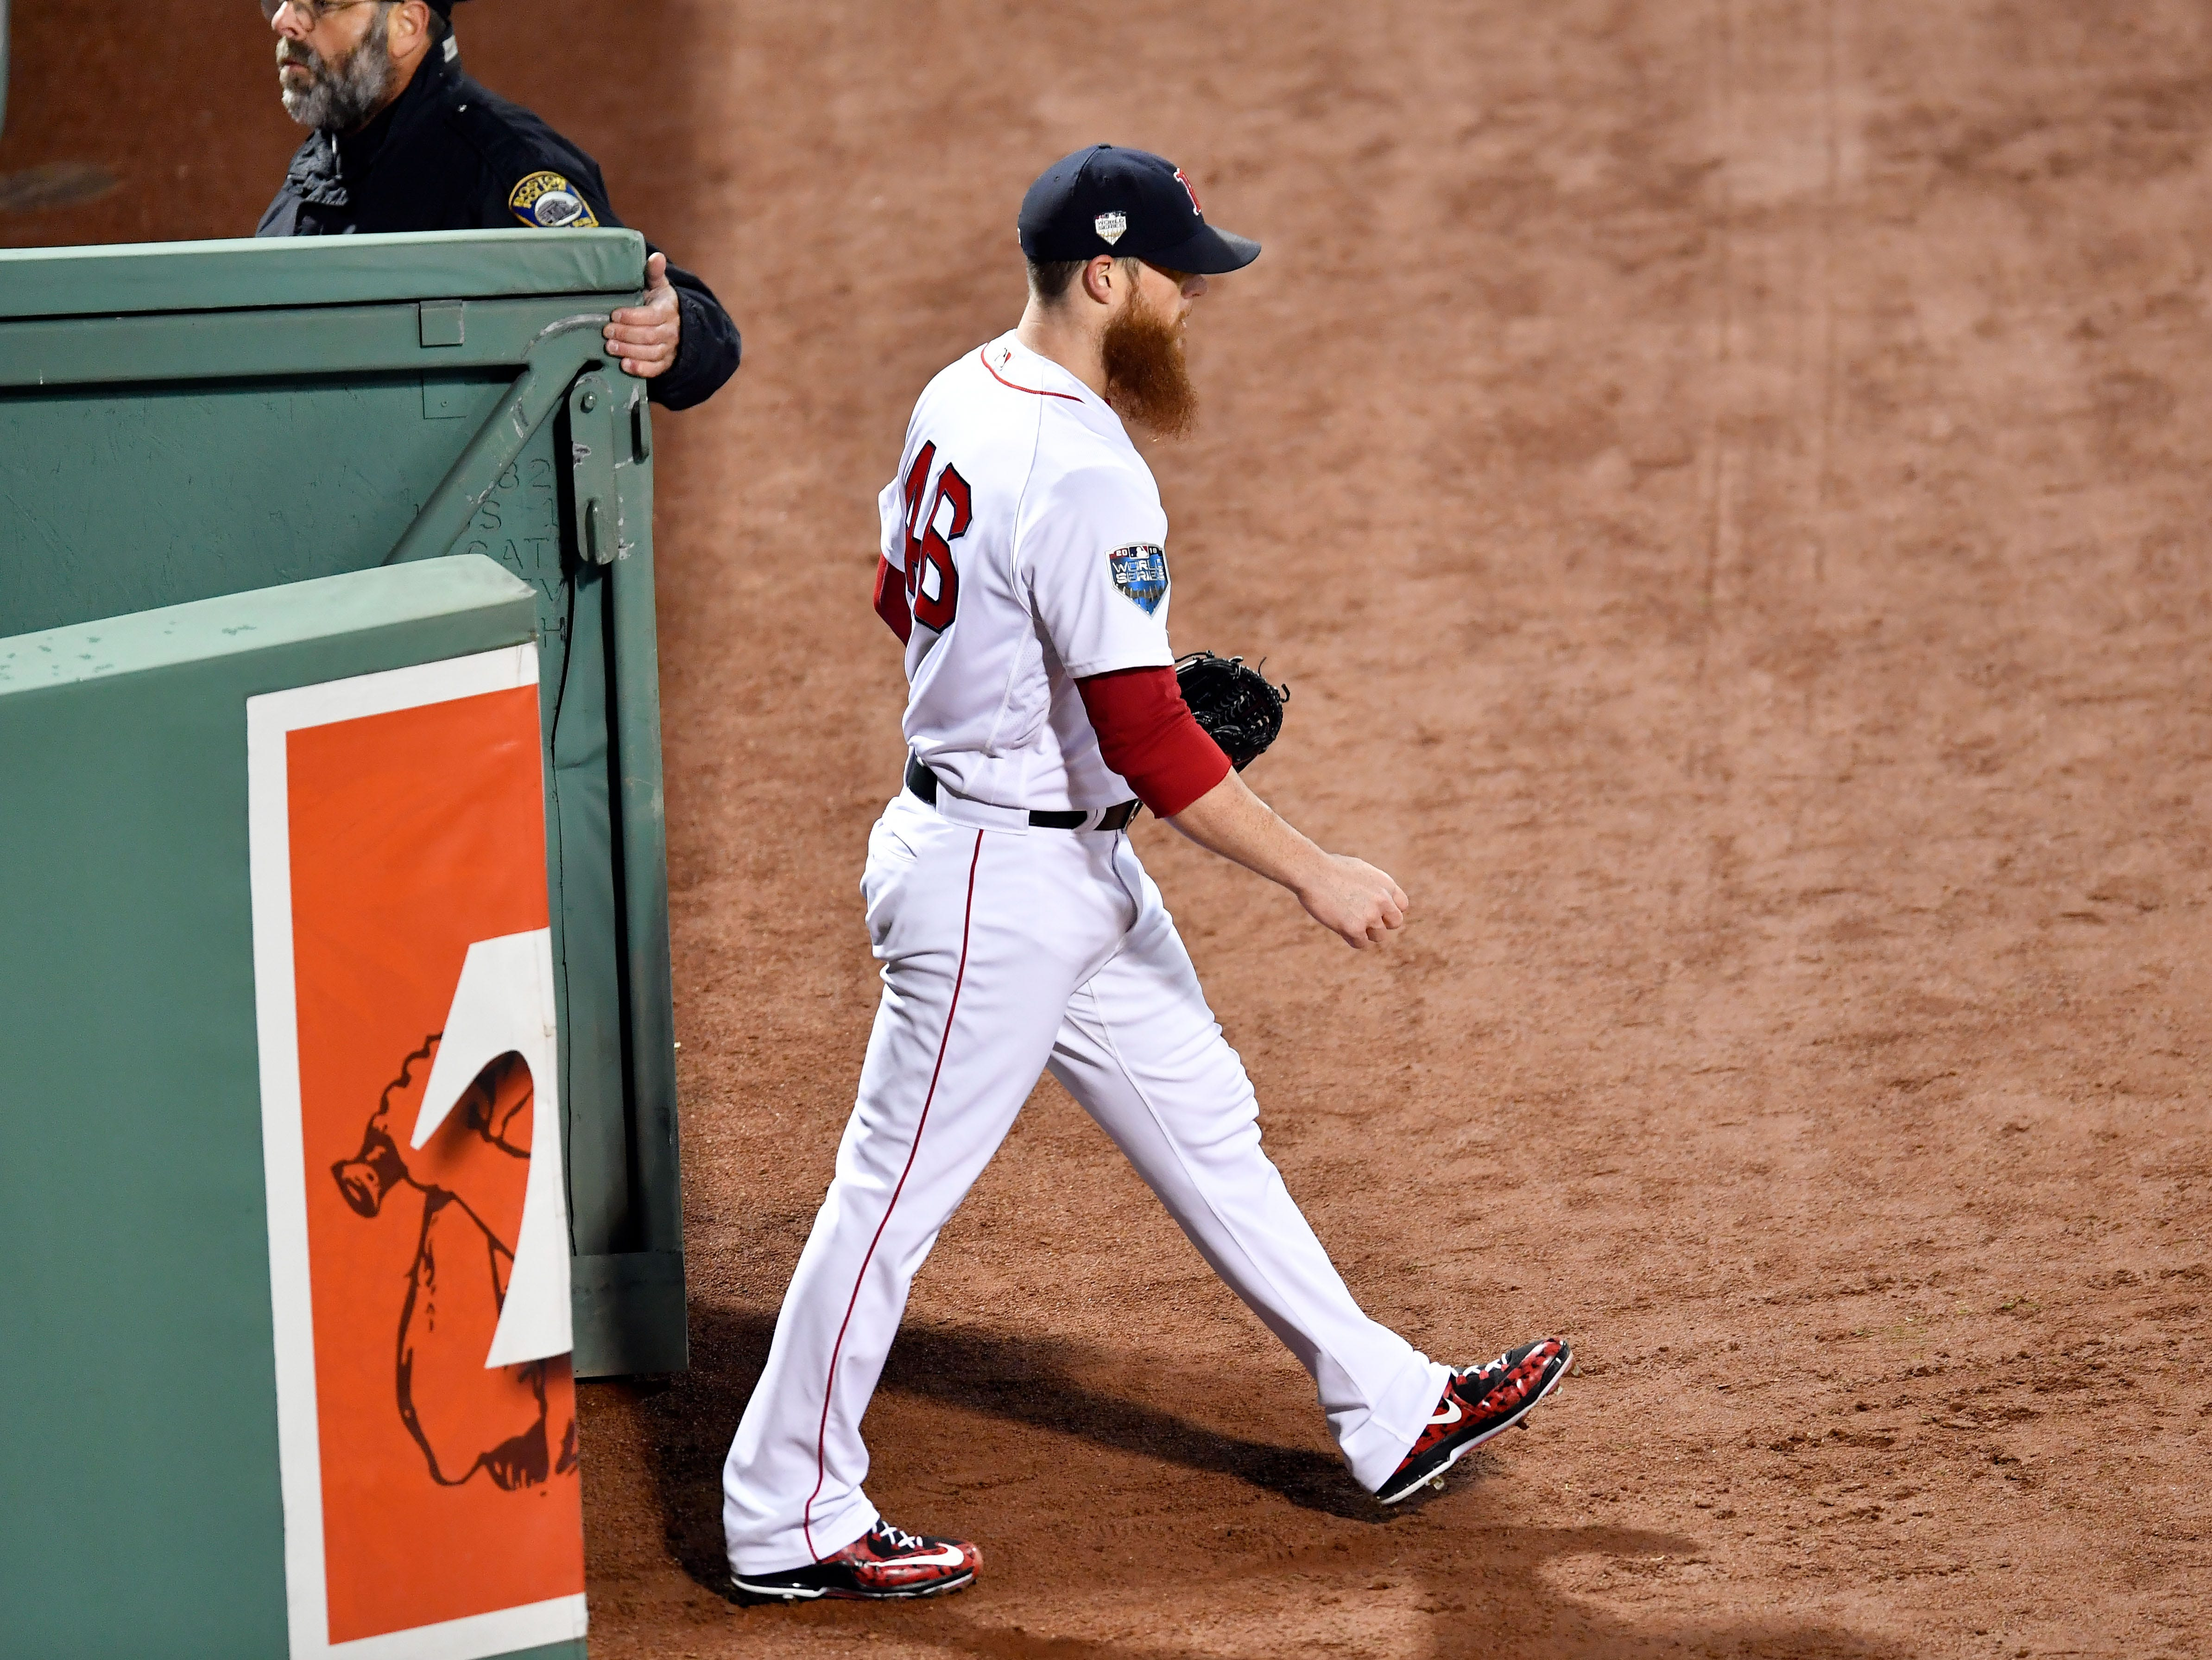 Game 2 at Fenway Park: Red Sox closer Craig Kimbrel walks out of the bullpen for the ninth inning.